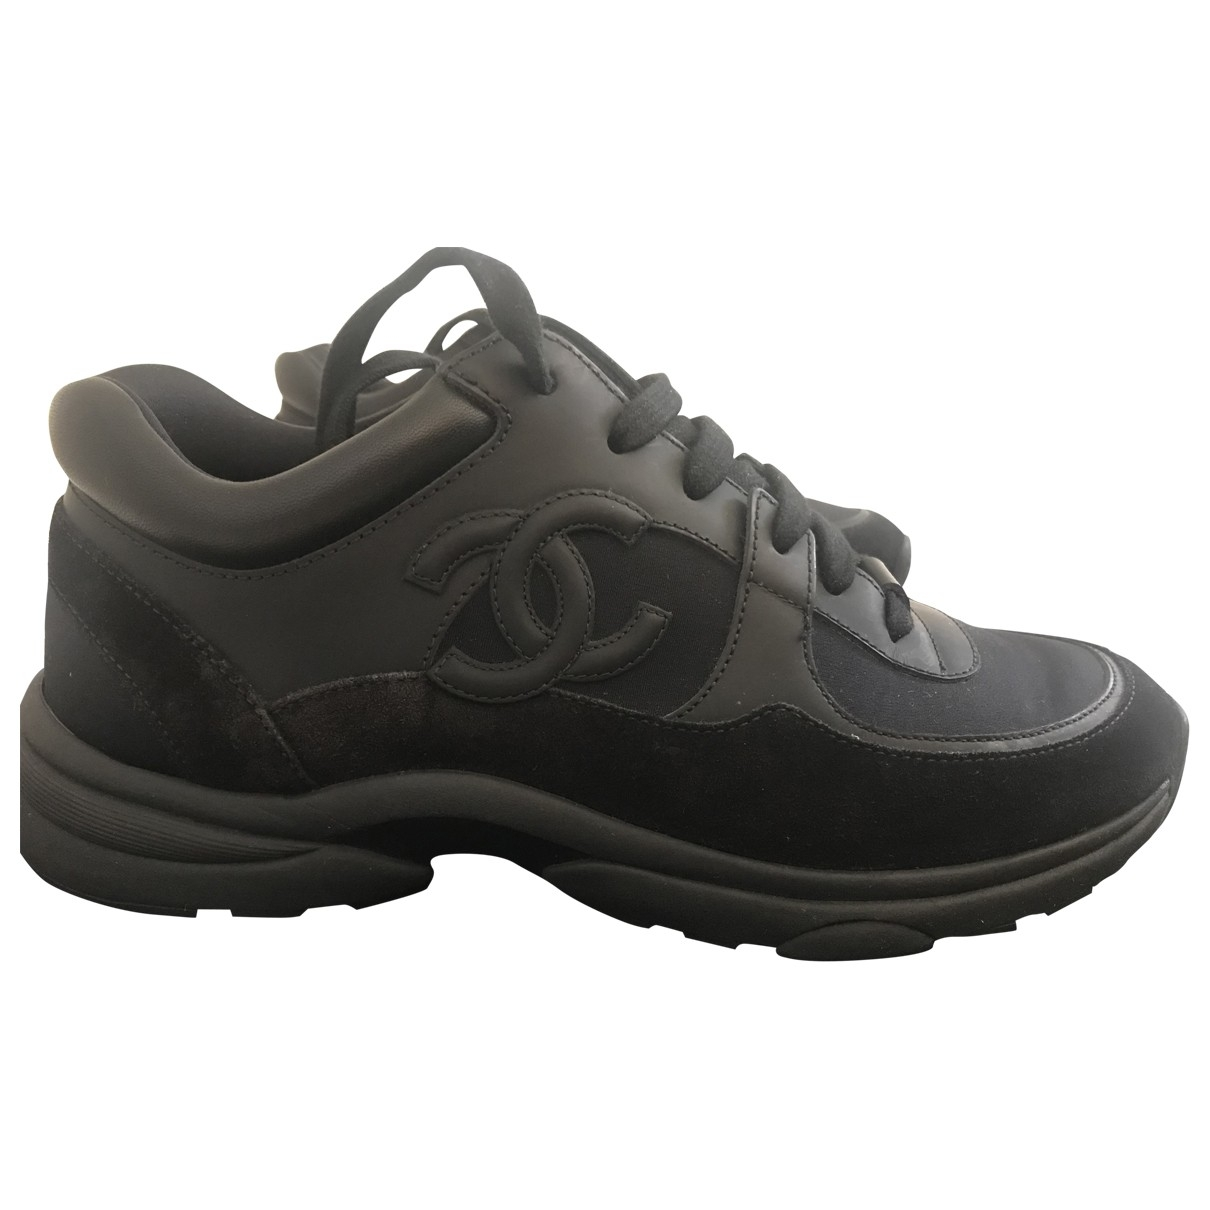 Chanel \N Black Leather Trainers for Women 39 EU